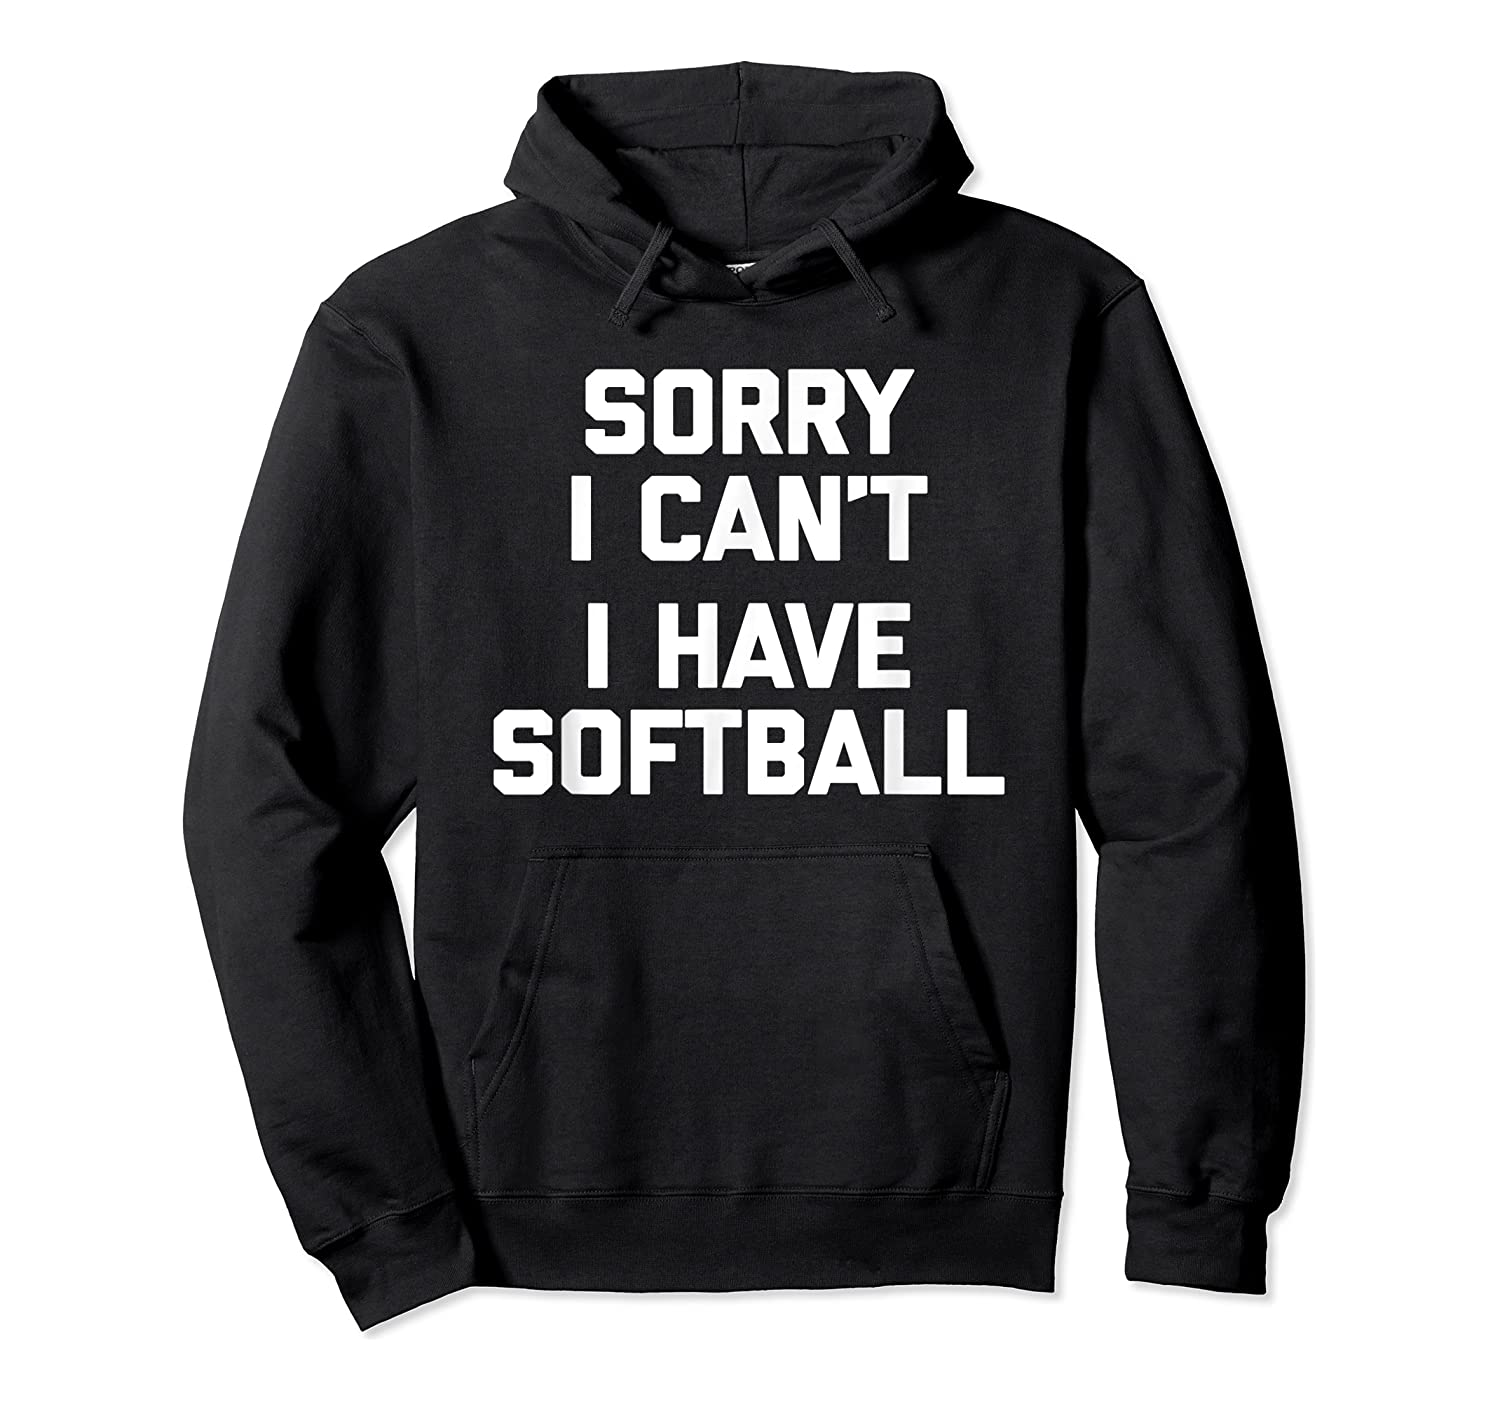 Sorry I Can't, I Have Softball Funny Saying Novelty Shirts Unisex Pullover Hoodie